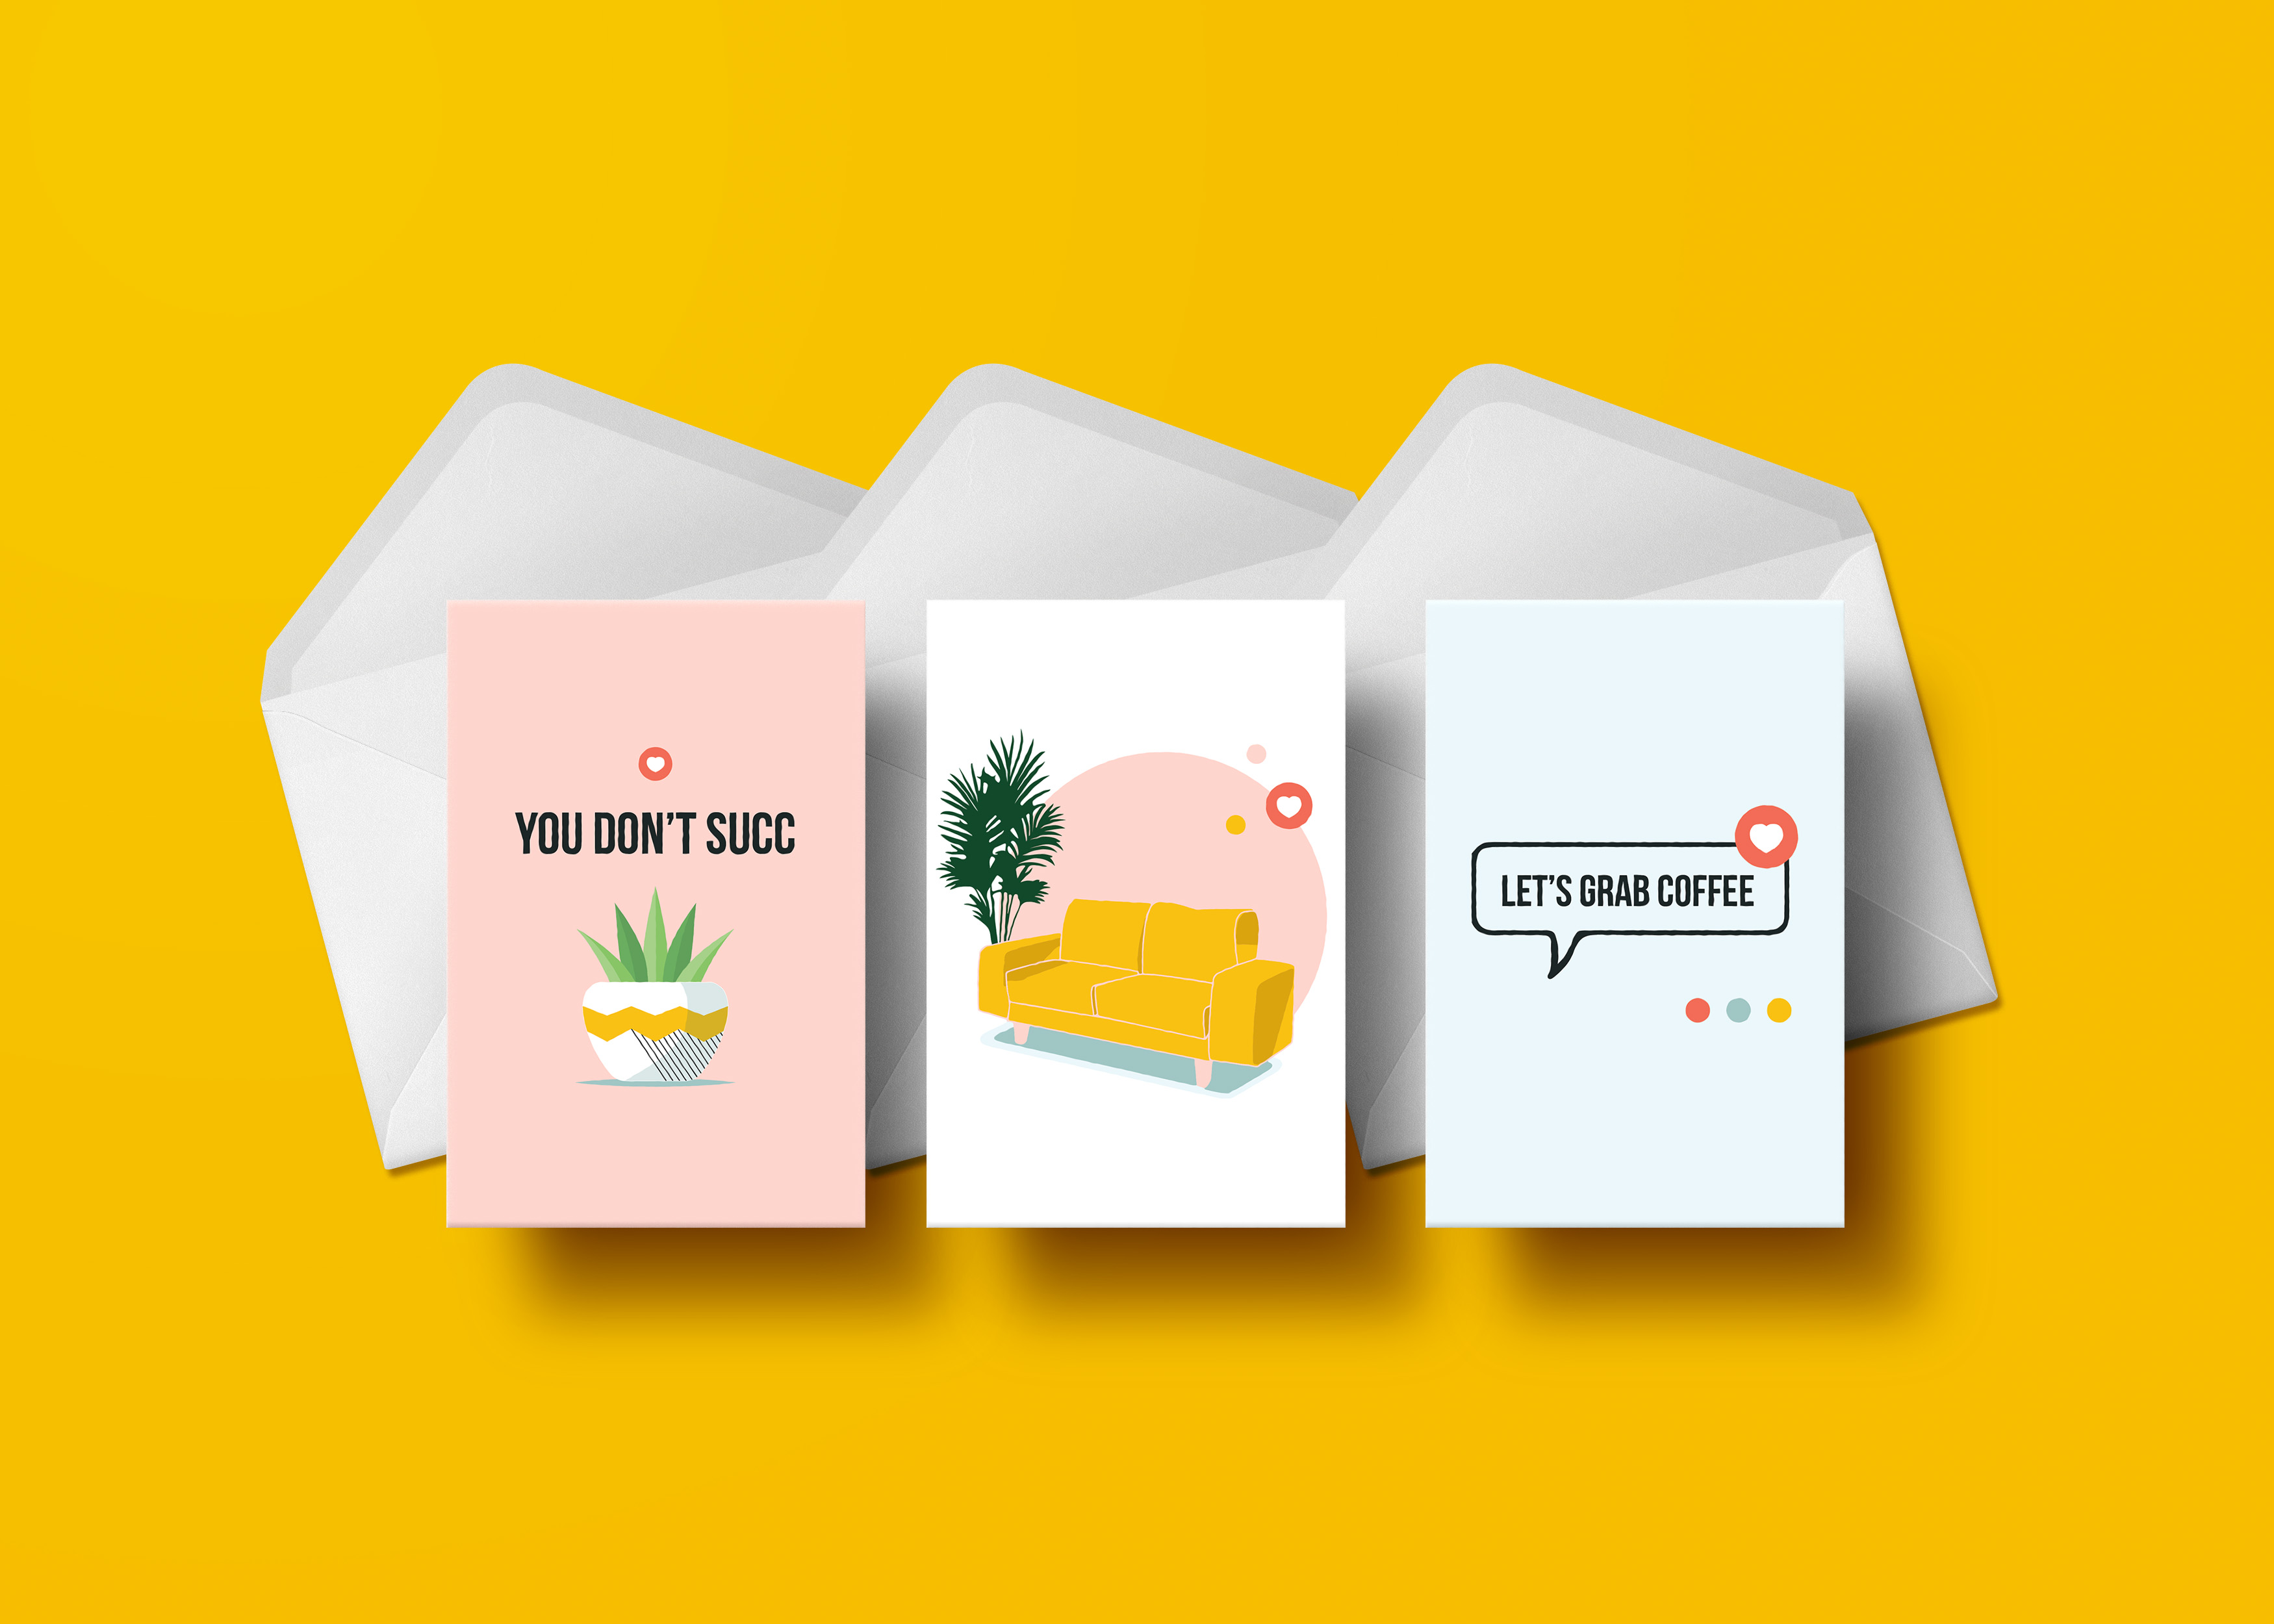 Encourage your biz bestie by sending them one of these playful greeting cards just because. This pack helps you stay connected by prompting you to schedule your next coffee date, and our signature Yellow Couch is perfect for good luck! All cards are blank inside so you can write your own sentiment and words of encouragement. 3 card assortment per pack.